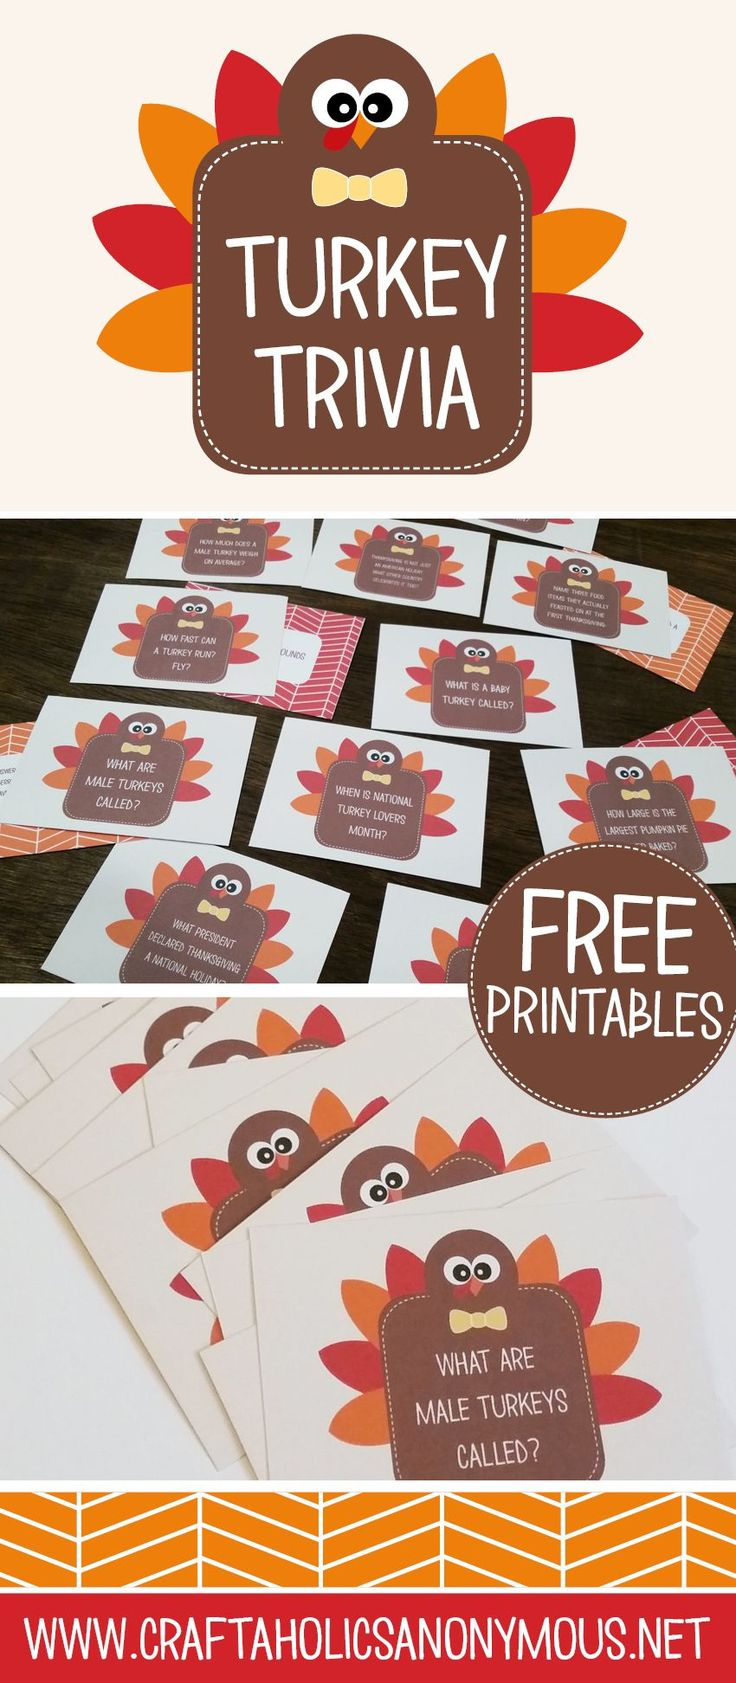 Craftaholics Anonymous® | Thanksgiving Table Craft: Turkey Trivia Cards